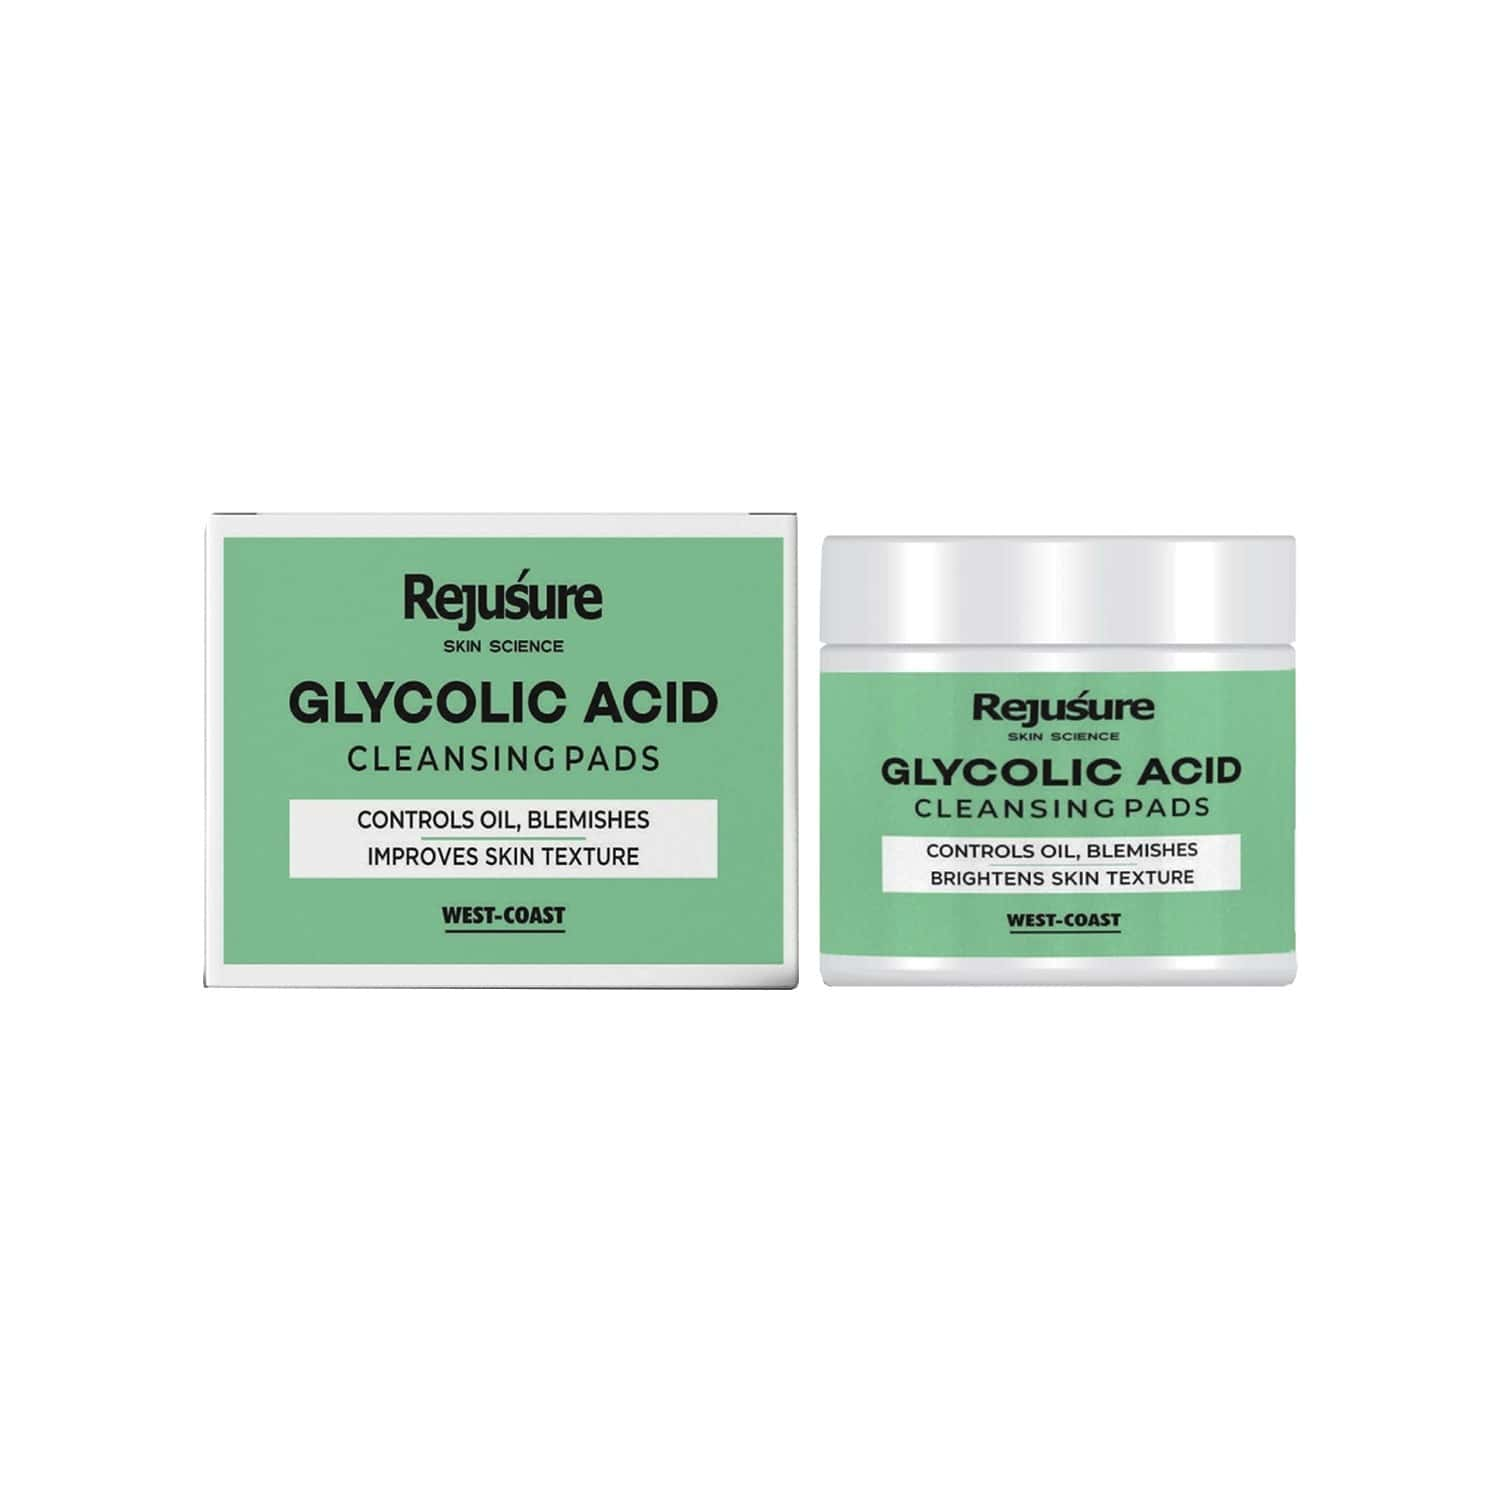 West Coast Rejusure Glycolic Acid Cleansing Pads - Controls Oil, Blemishes Brightens Skin Texture - 50 Pads